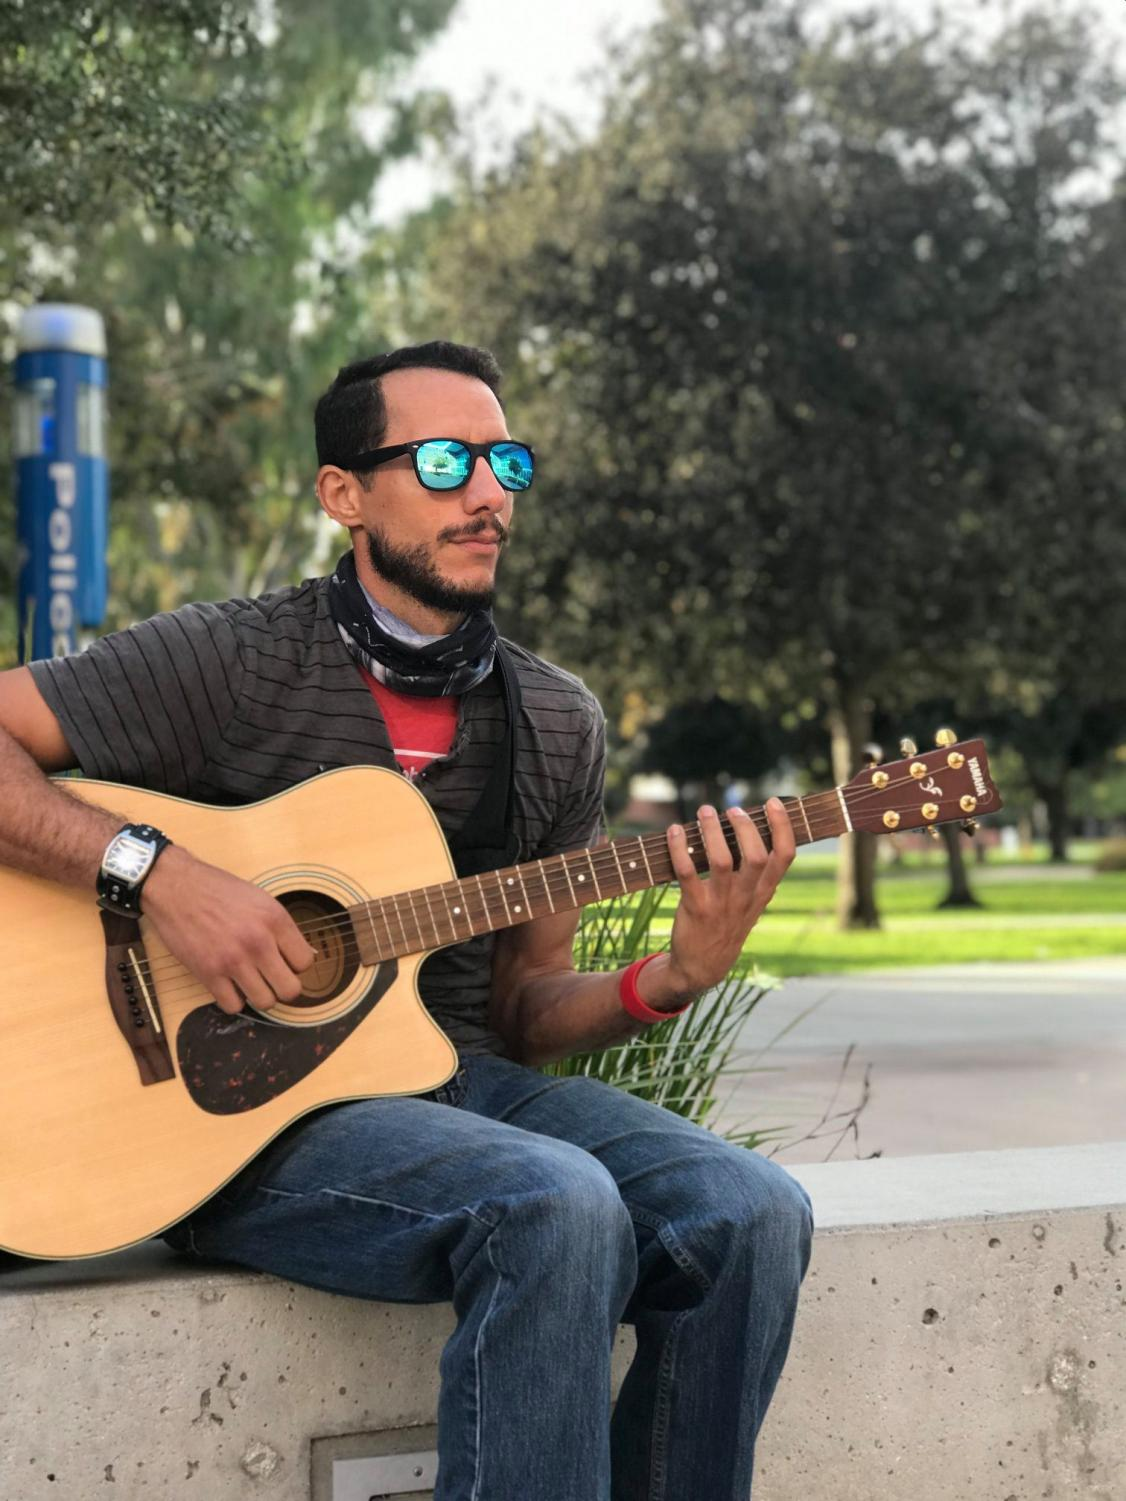 """Michael Nicoli Ferrey, 32, music major, plays his guitar at his regular spot between the MBA and Music Buildings at ECC on Oct. 14. Nicoli is a multi-musician who also plays the piano, drums and bass. """"Currently my goals consist of recording my music successfully finally because it's been a long process that I haven't accomplished yet,"""" Nicoli said."""